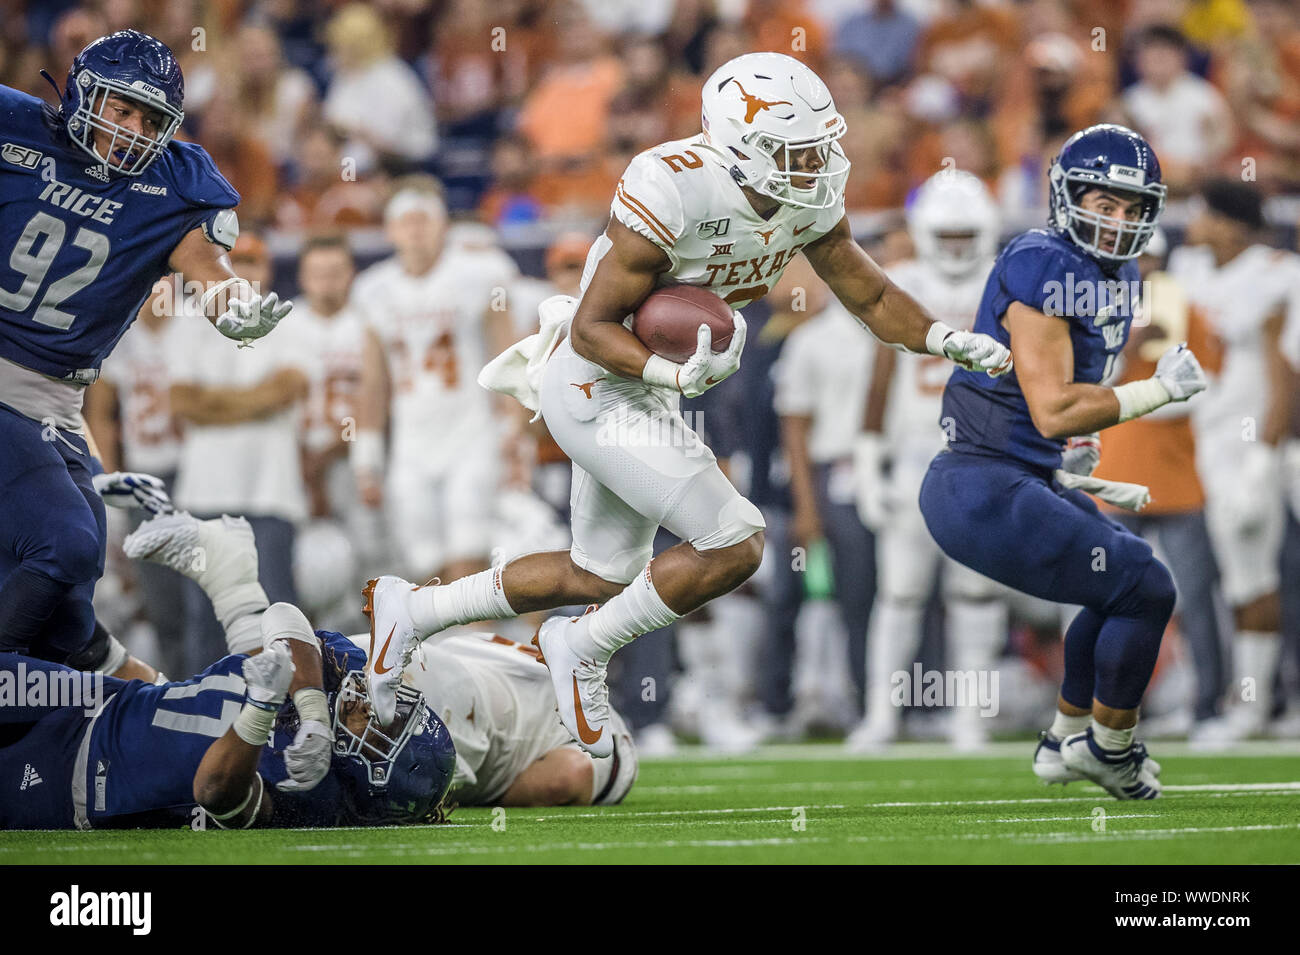 September 14, 2019: Texas Longhorns running back Roschon Johnson (2) breaks away from Rice Owls linebacker Treshawn Chamberlain (17) in the NCAA football game between the Texas Longhorns and the Rice Owls at NRG Stadium in Houston, Texas. Texas defeated Rice 48-13. Prentice C. James/CSM Stock Photo